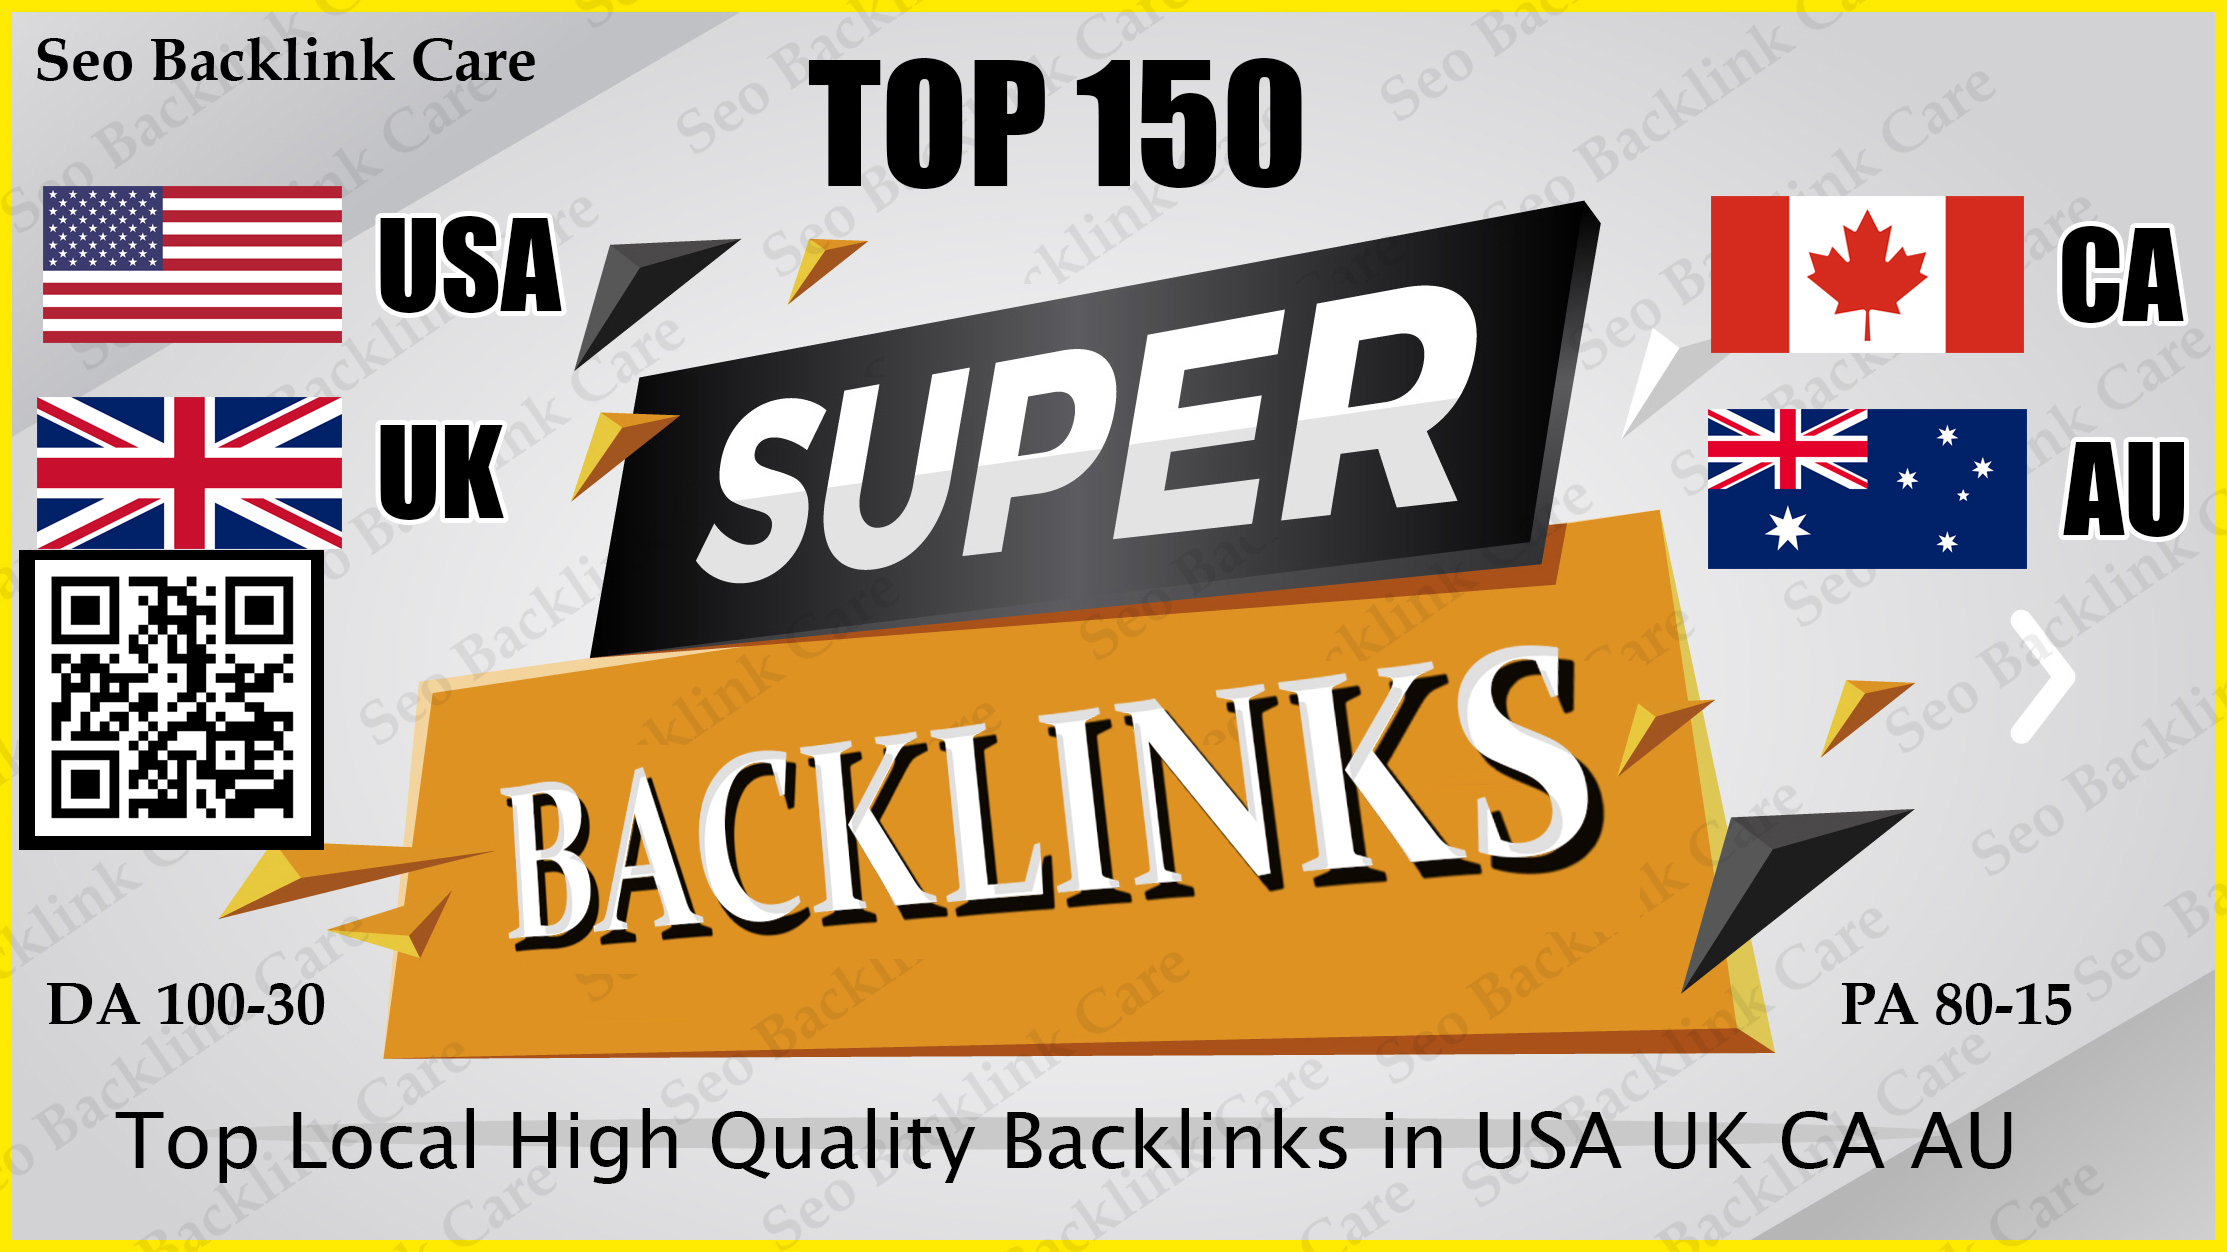 Top 150 USA UK CA AU Backlink SEO HQ Link Building Services for Google Ranking